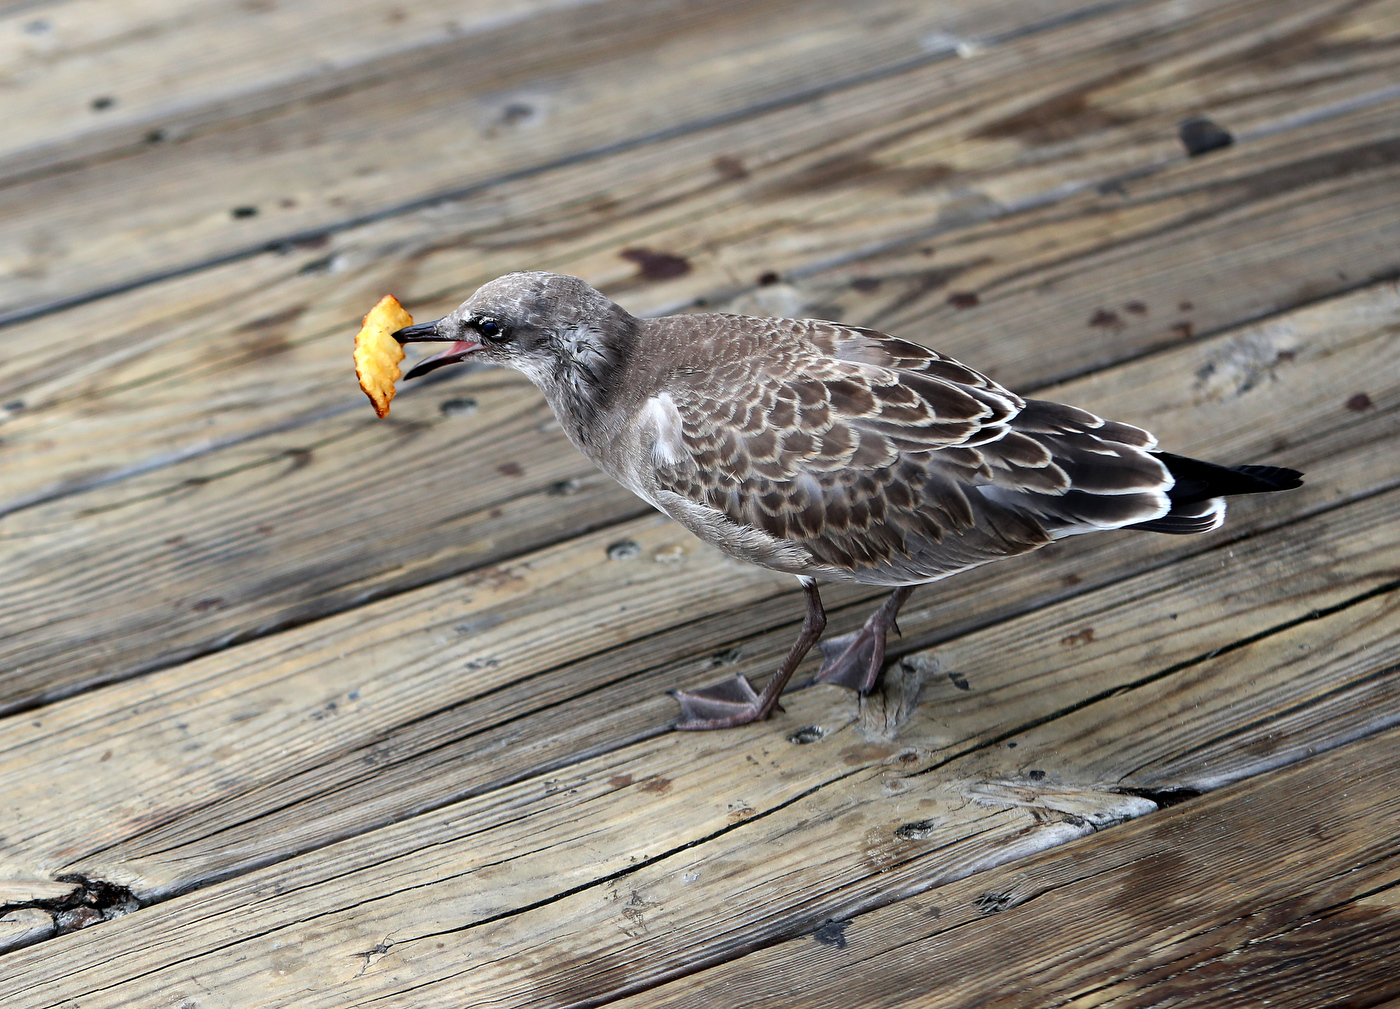 A Shore town declared war on seagulls. We bought French fries to see who is winning.